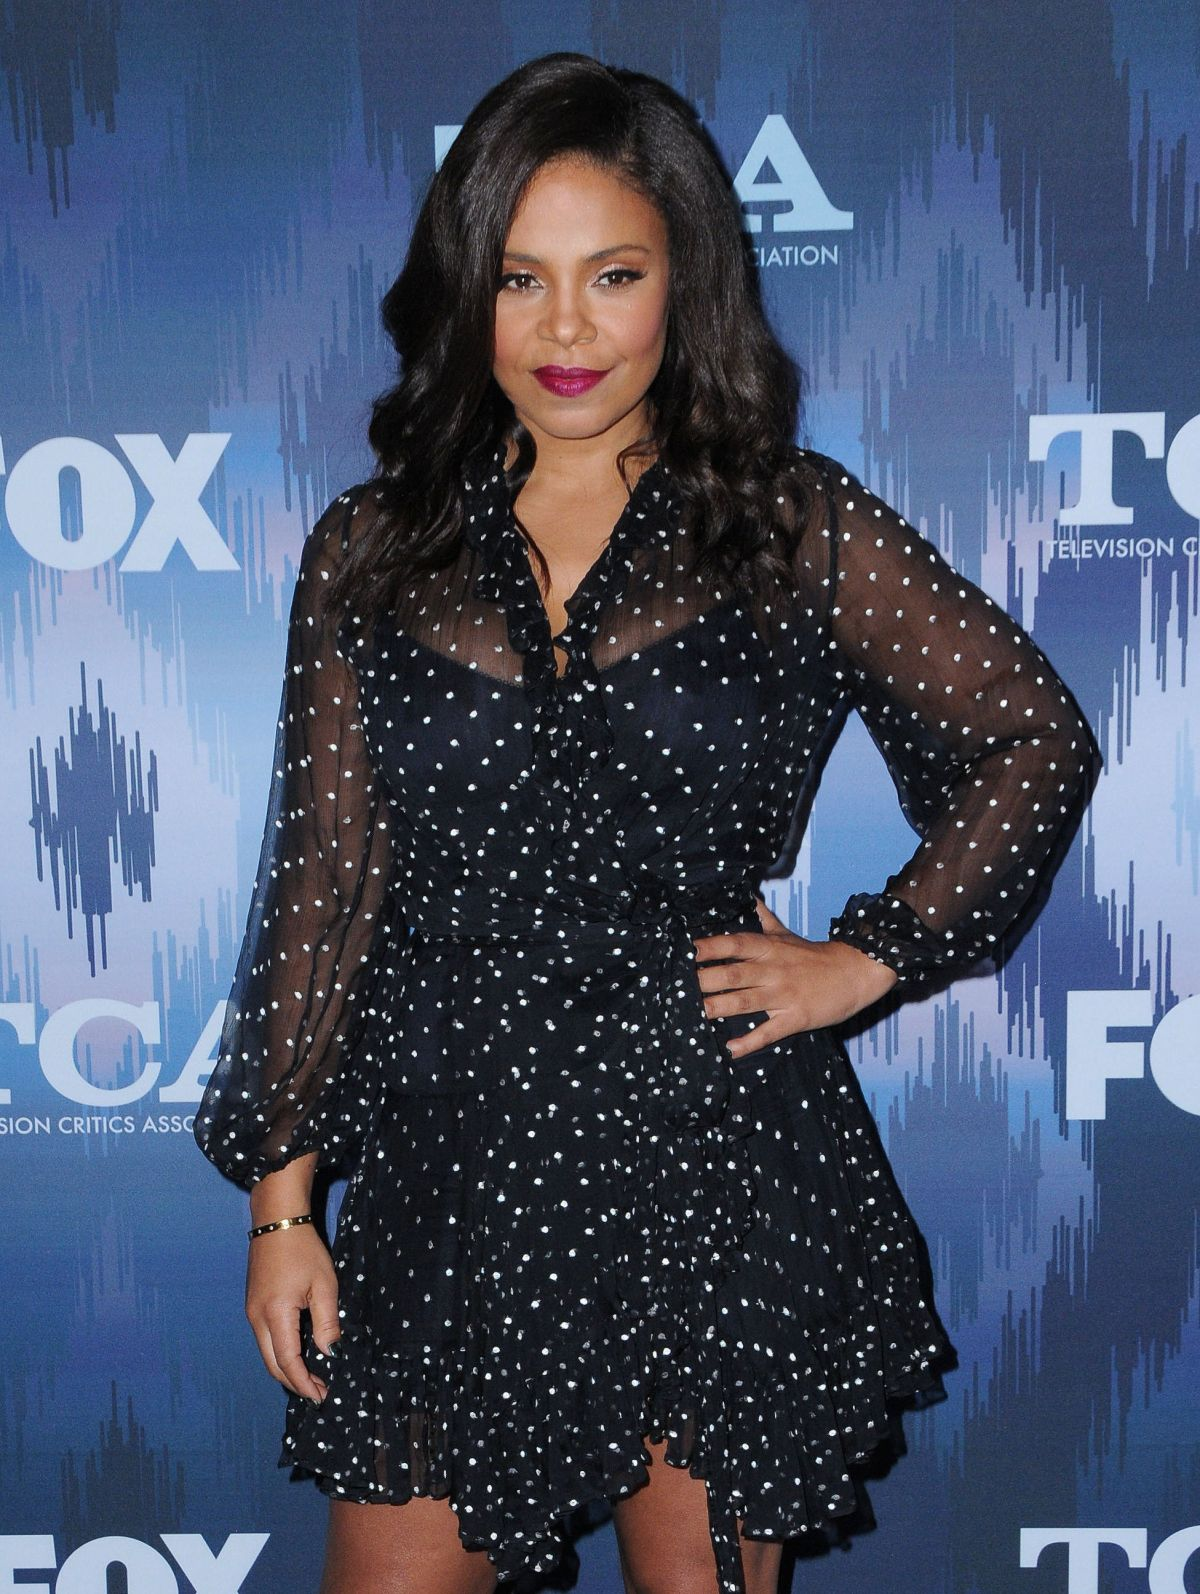 SANAA LATHAN at Fox All-star Party at 2017 Winter TCA Tour in Pasadena 01/11/2017